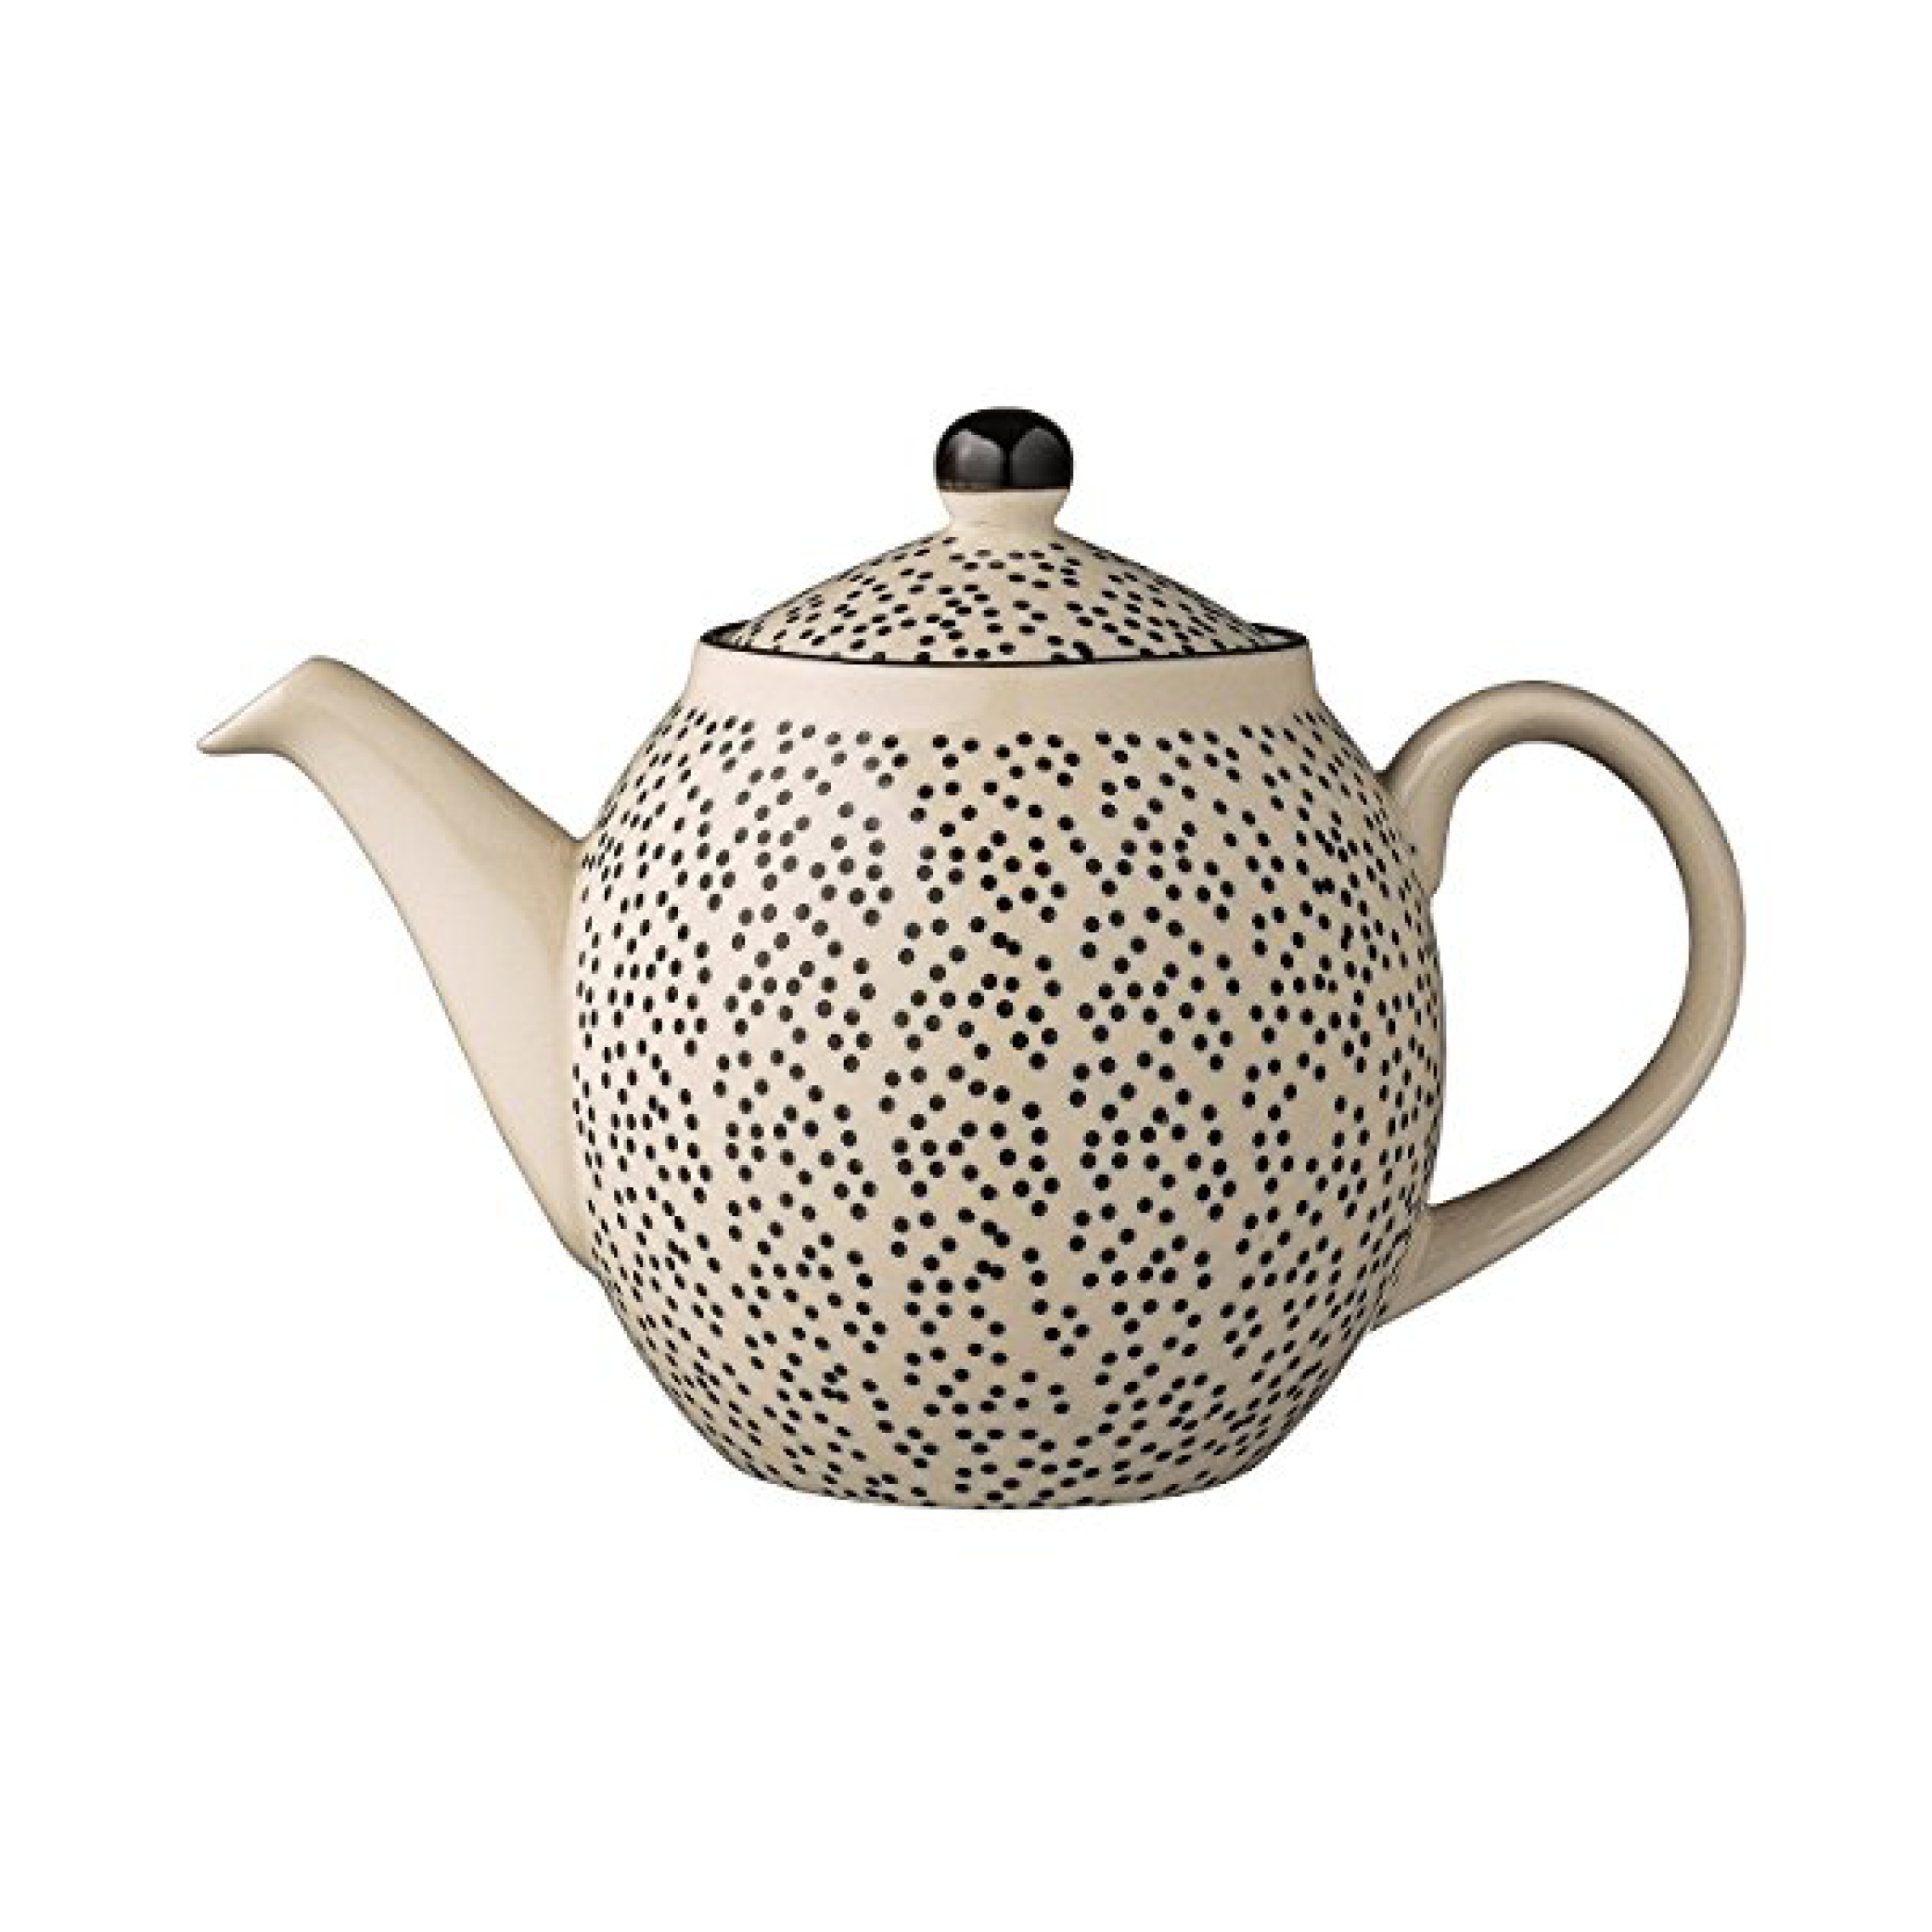 Bloomingville Julie Ceramic Teapot $25.95   Wants 1 Has 1 Needs 0